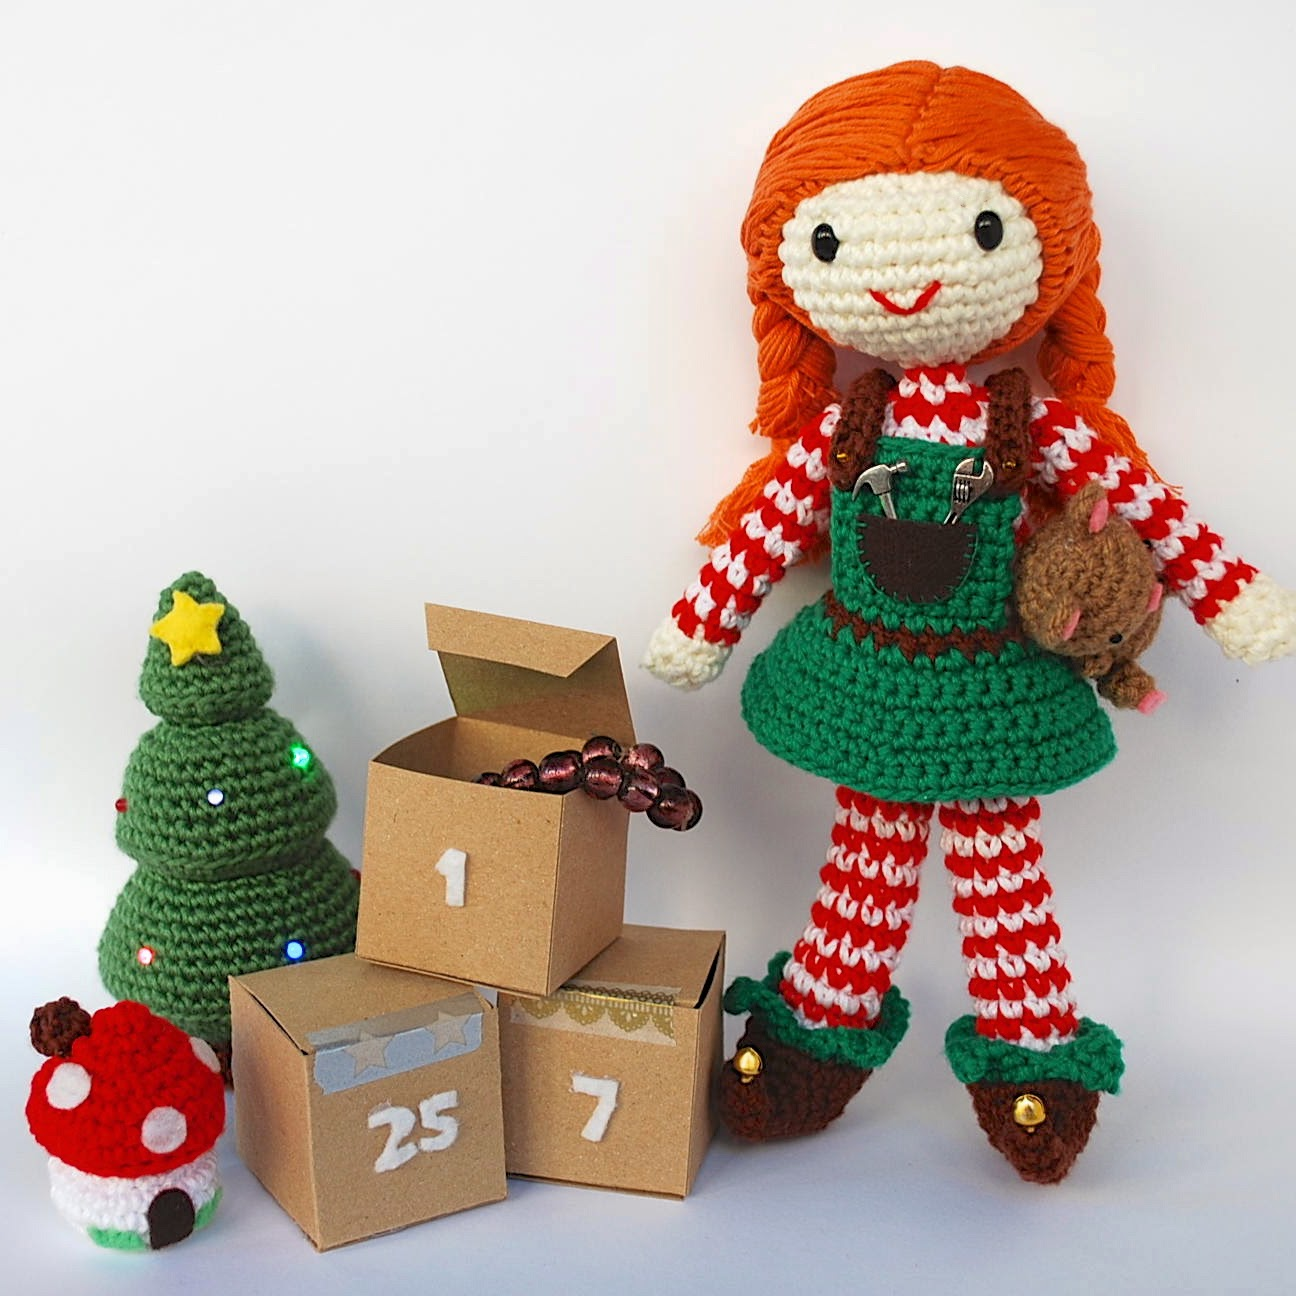 Amigurumi elf and advent calendar